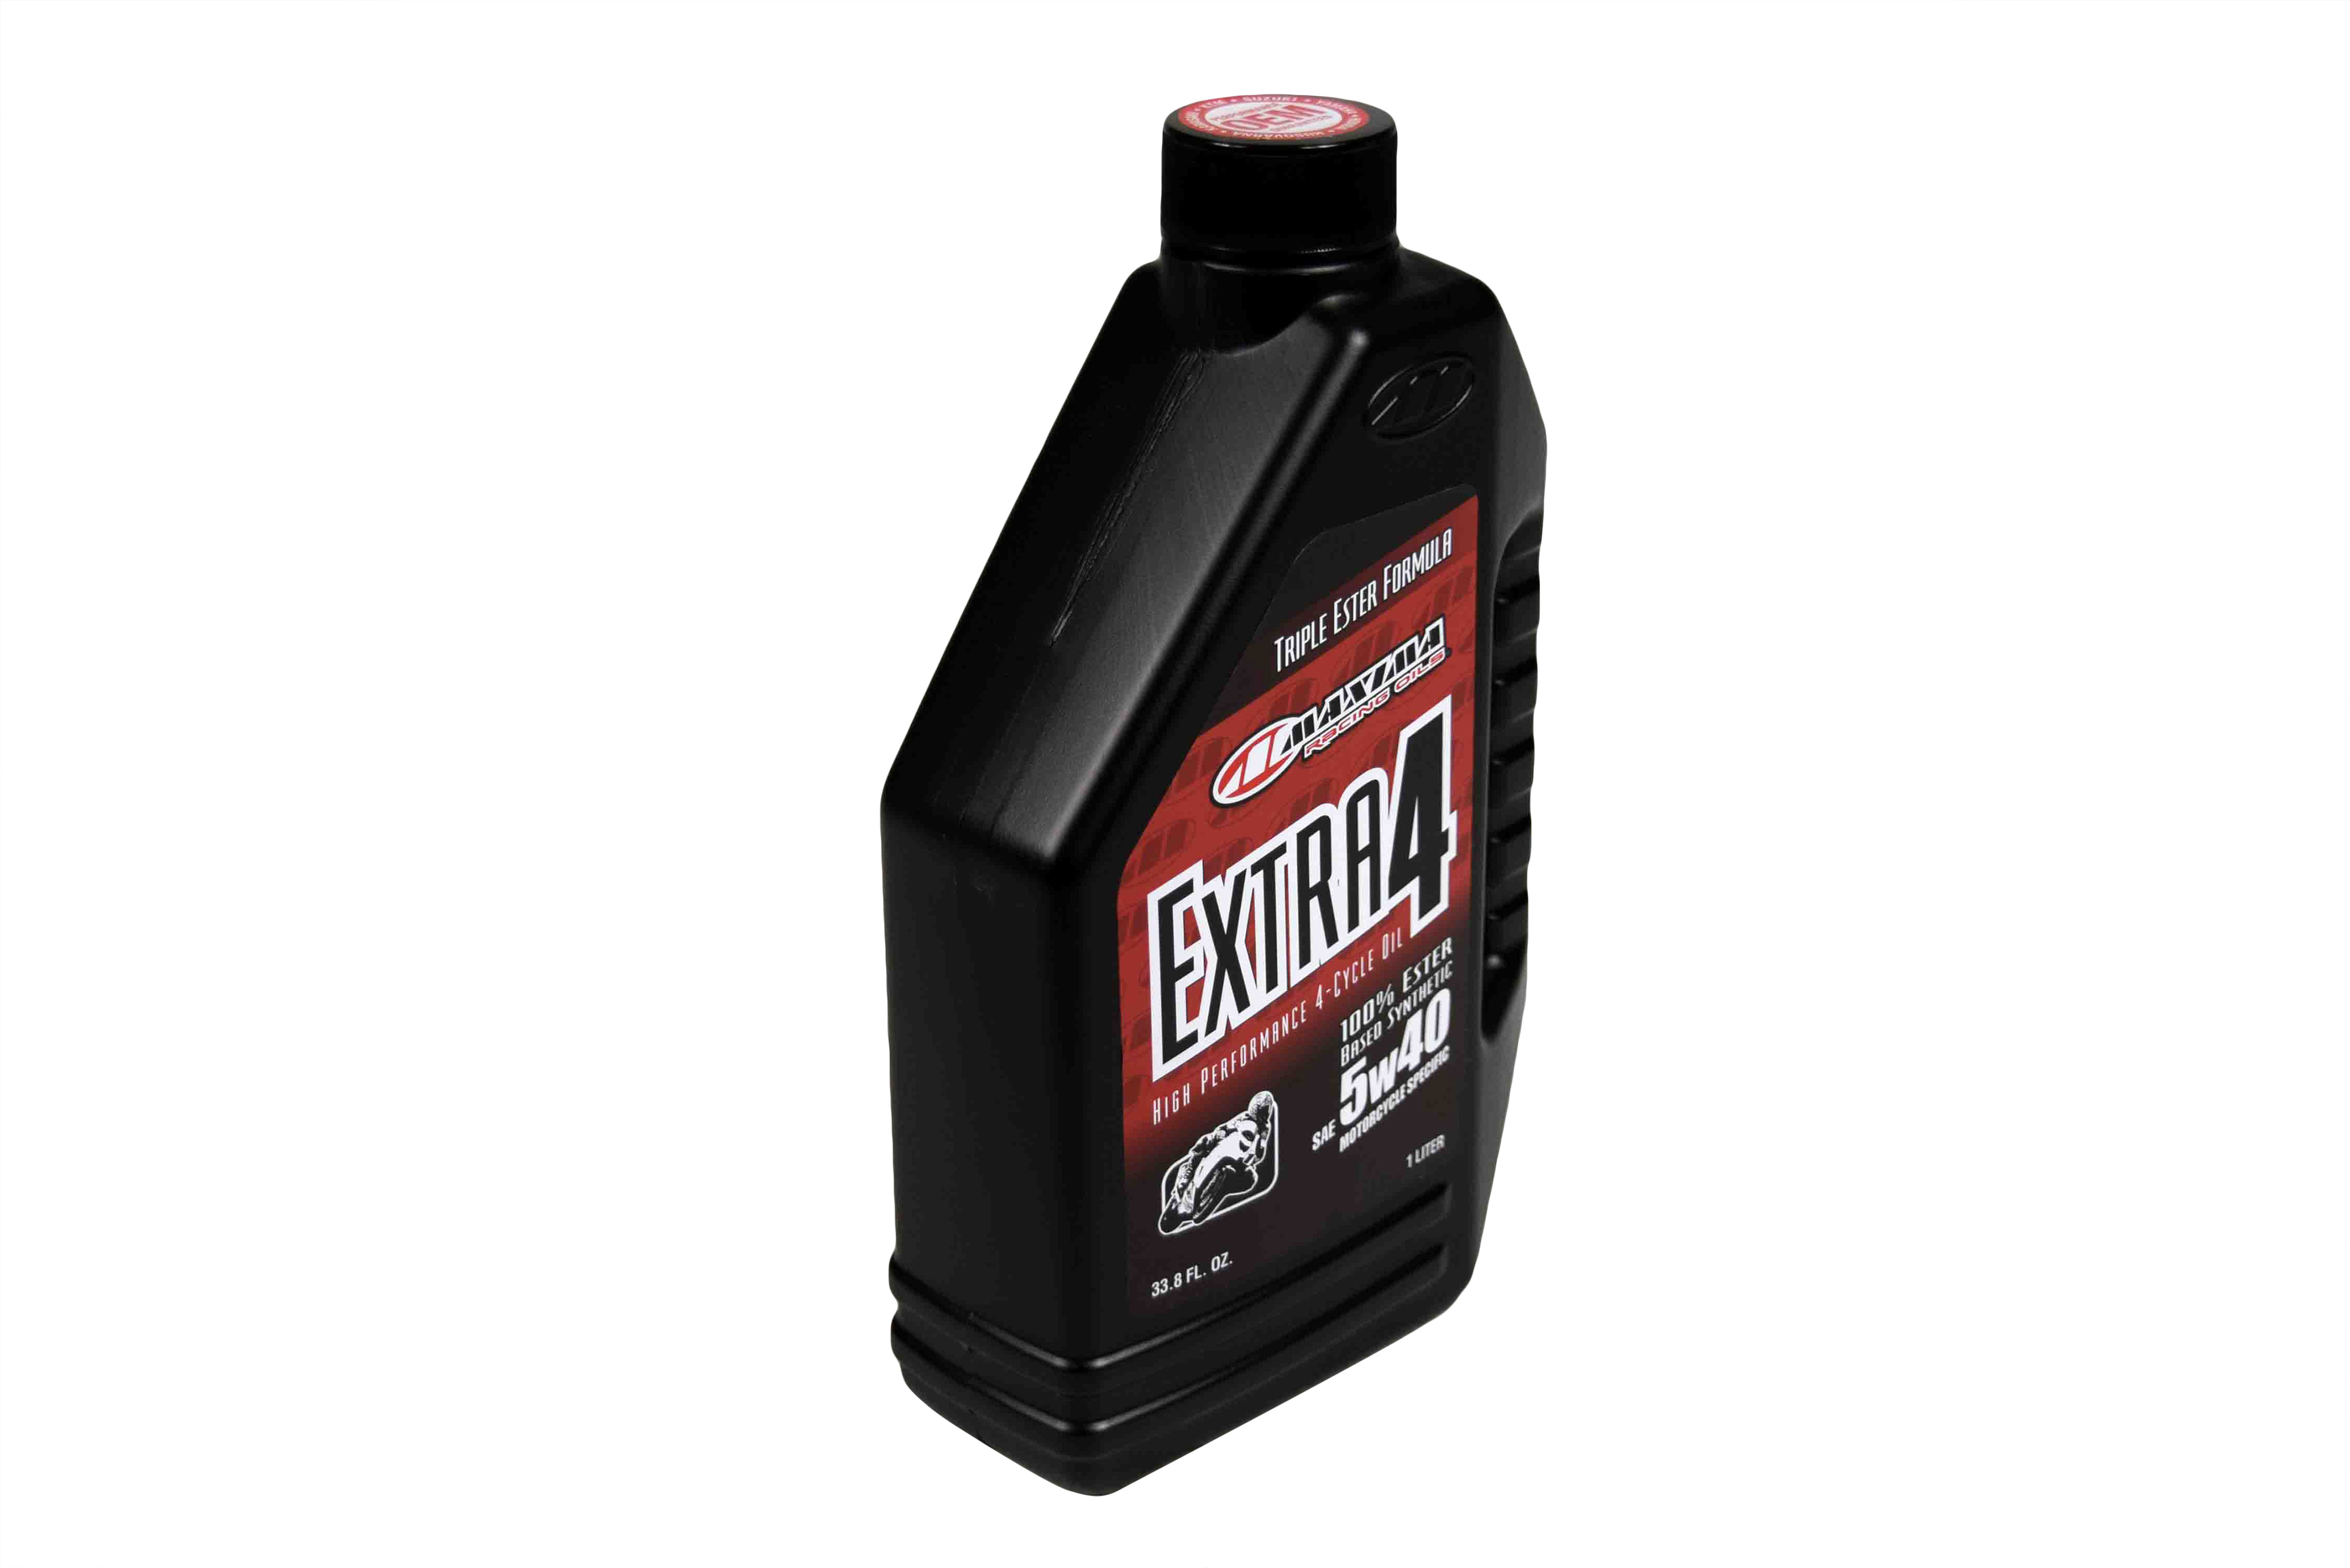 Maxima-30-17901-Extra4-5W-40-Synthetic-4T-Motorcycle-Engine-Oil-1-Liter-Bottle-image-2